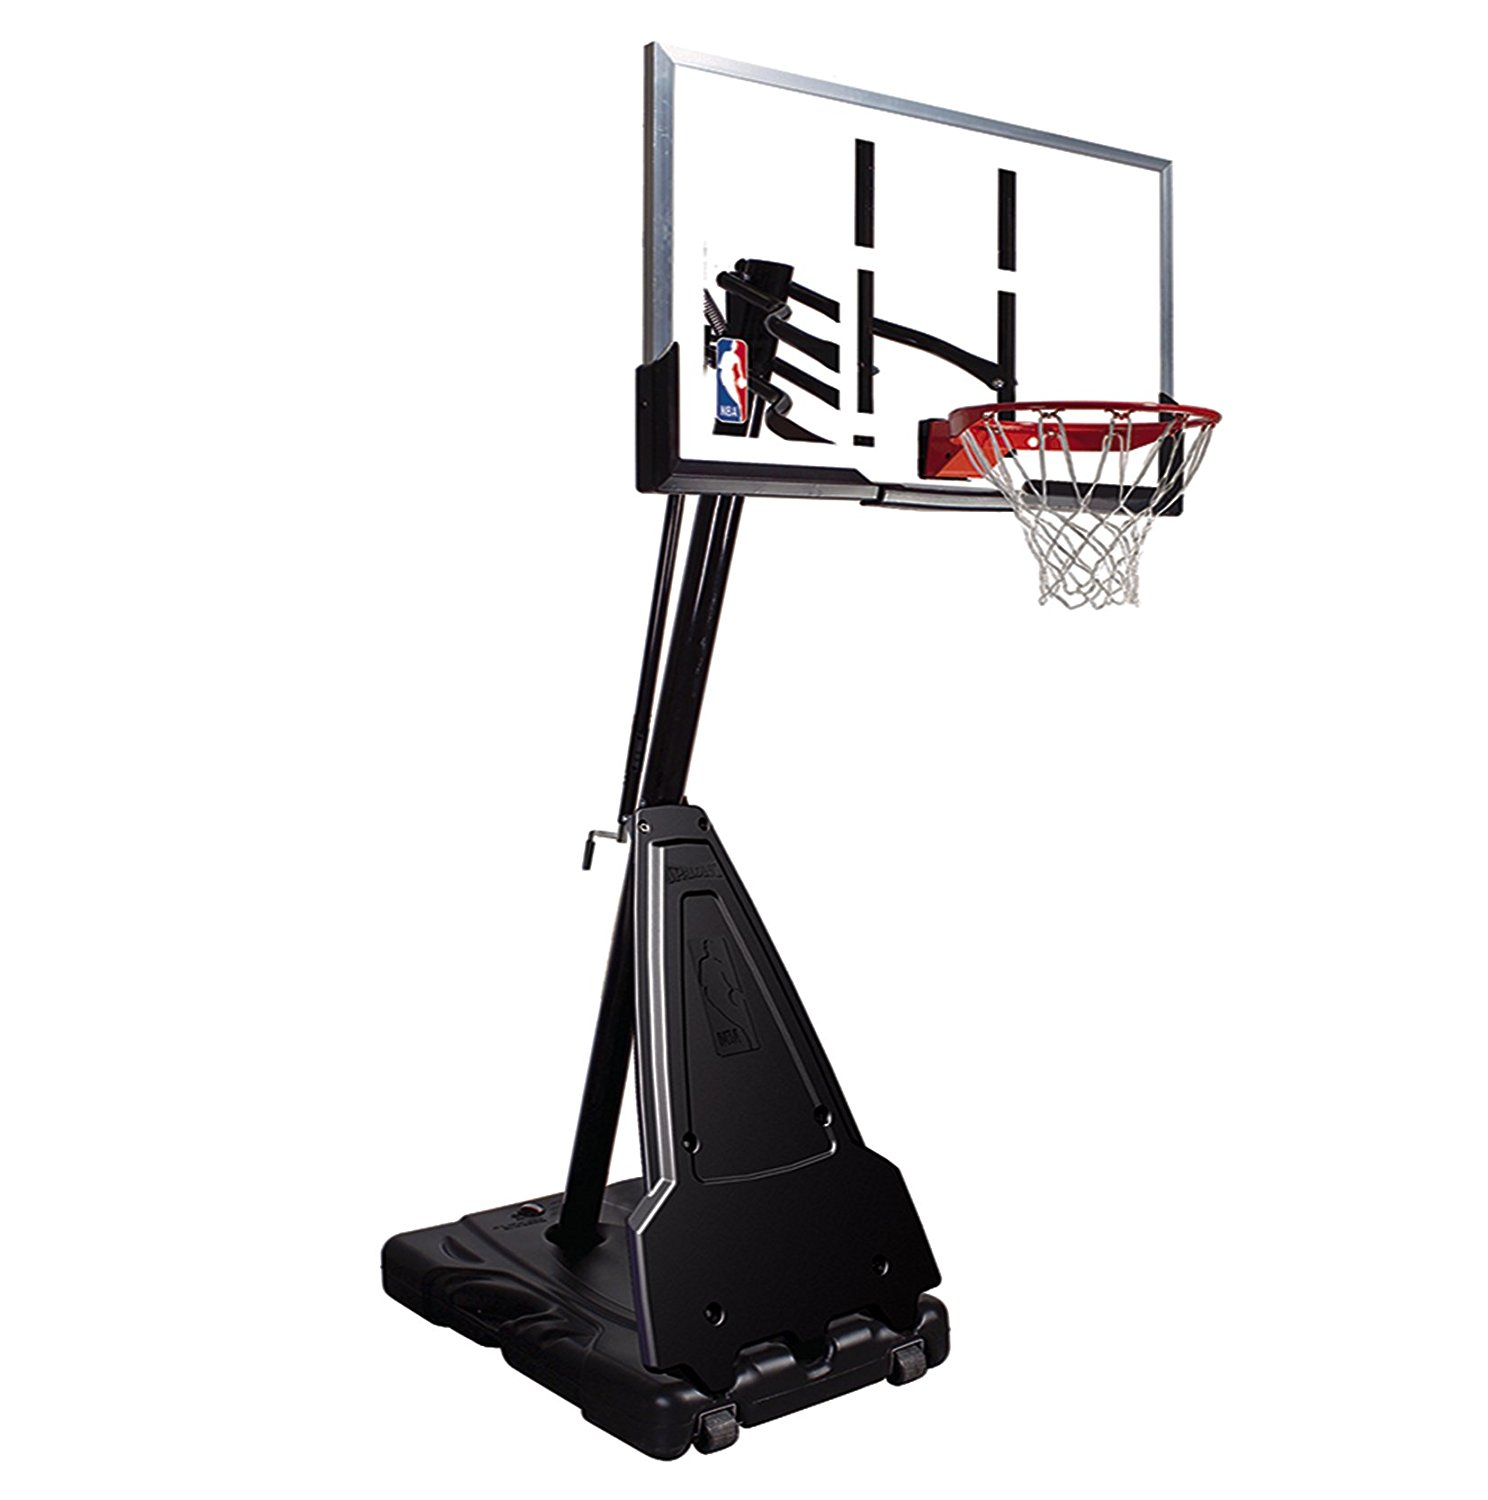 Spalding NBA Portable Basketball System Review